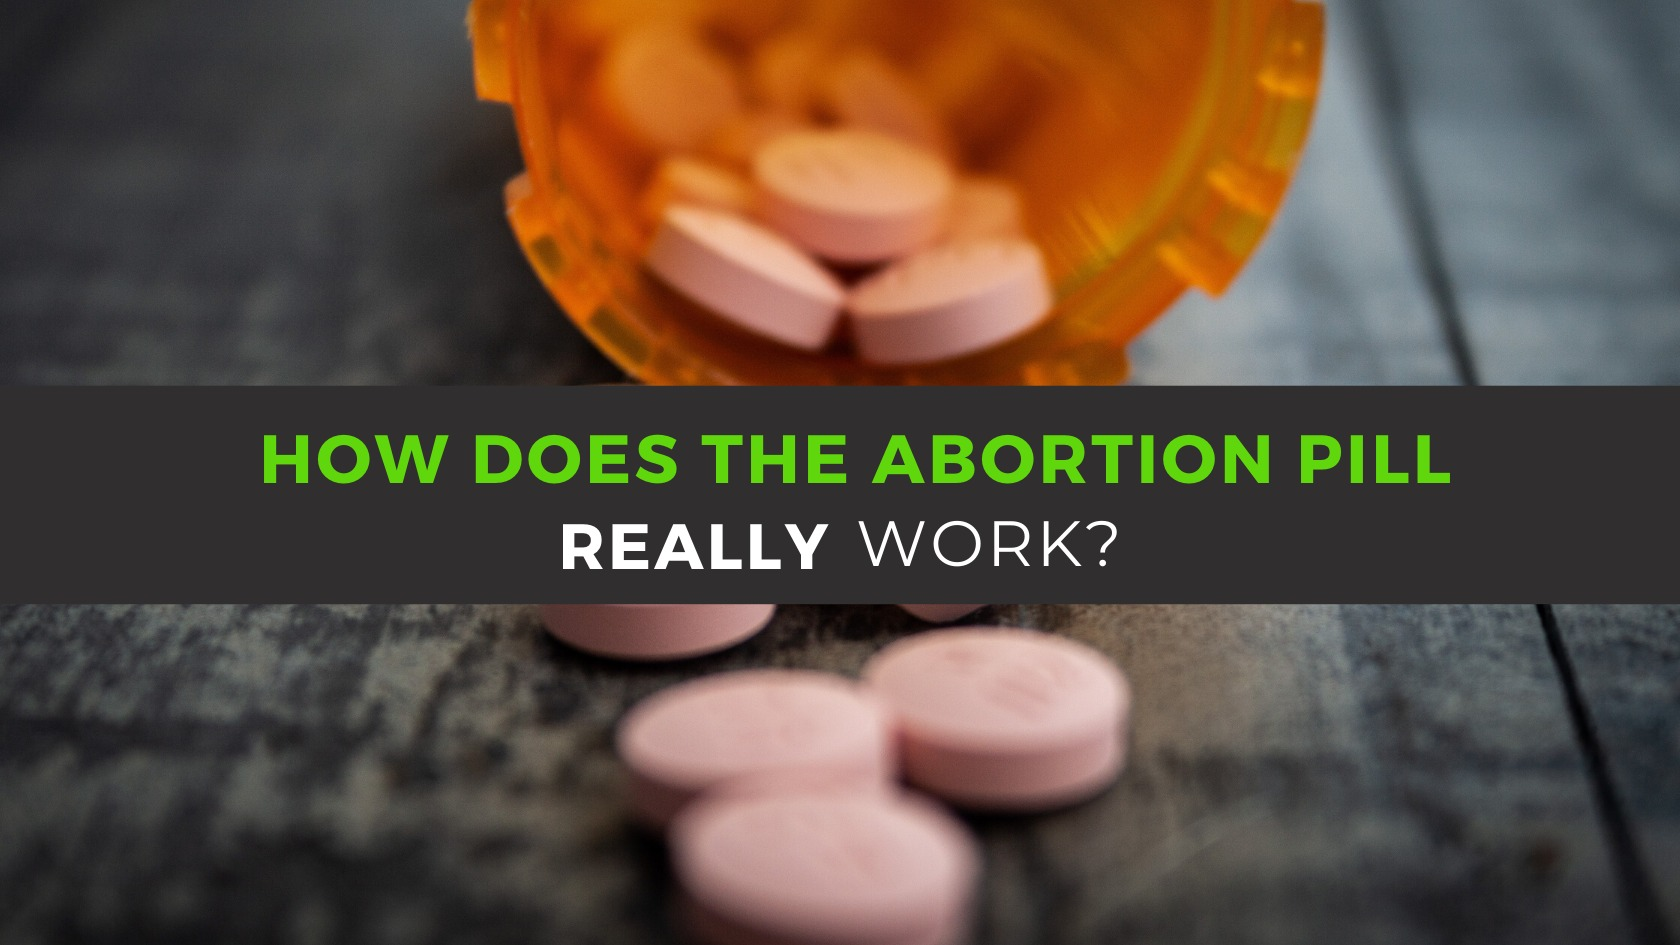 How The Abortion Pill Really Works